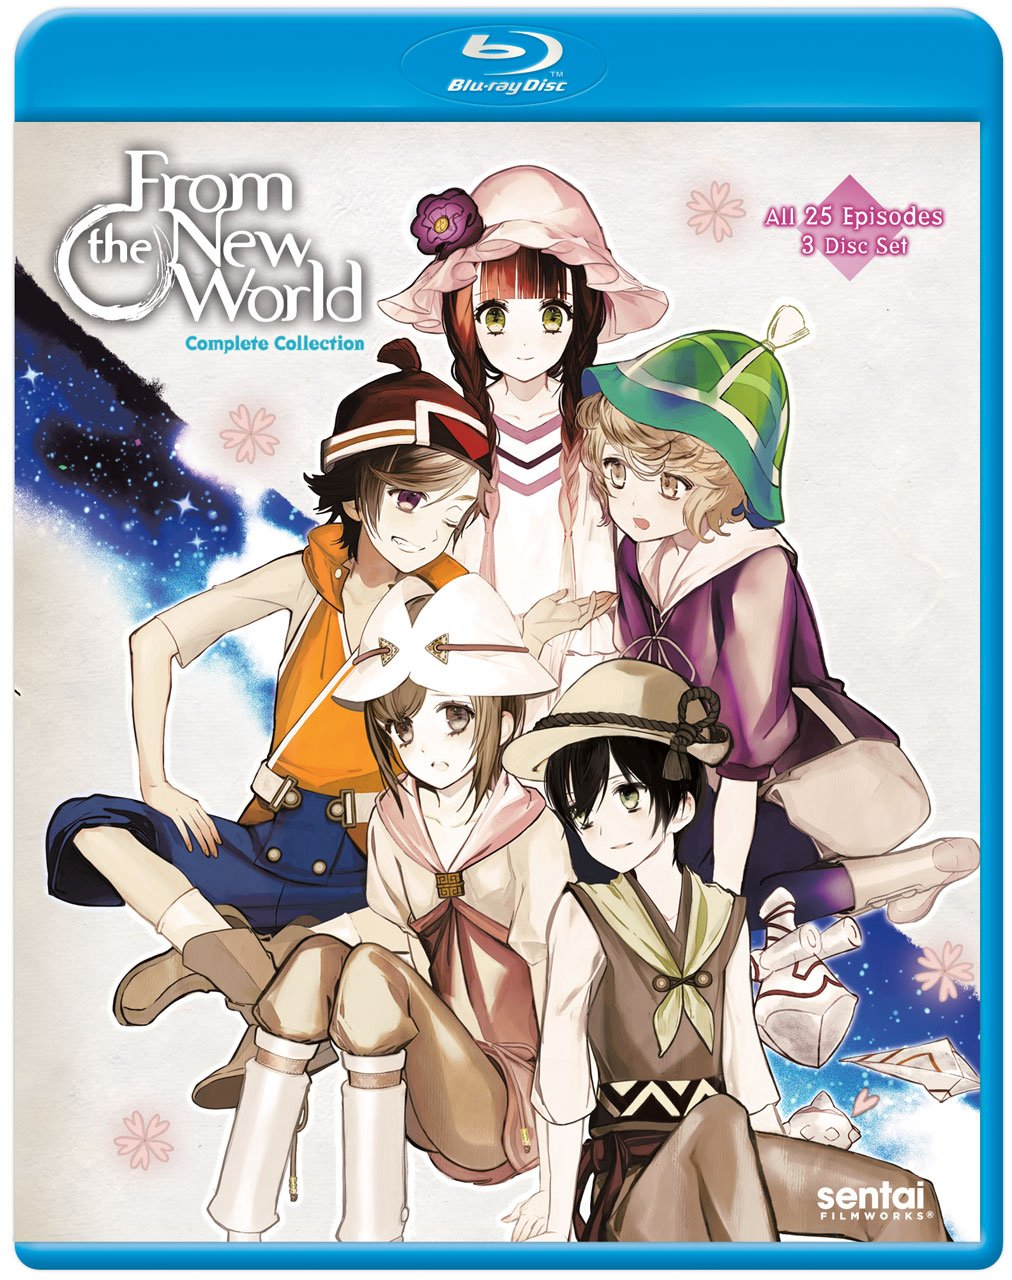 From the New World Complete Collection Blu-ray (Dual Audio)